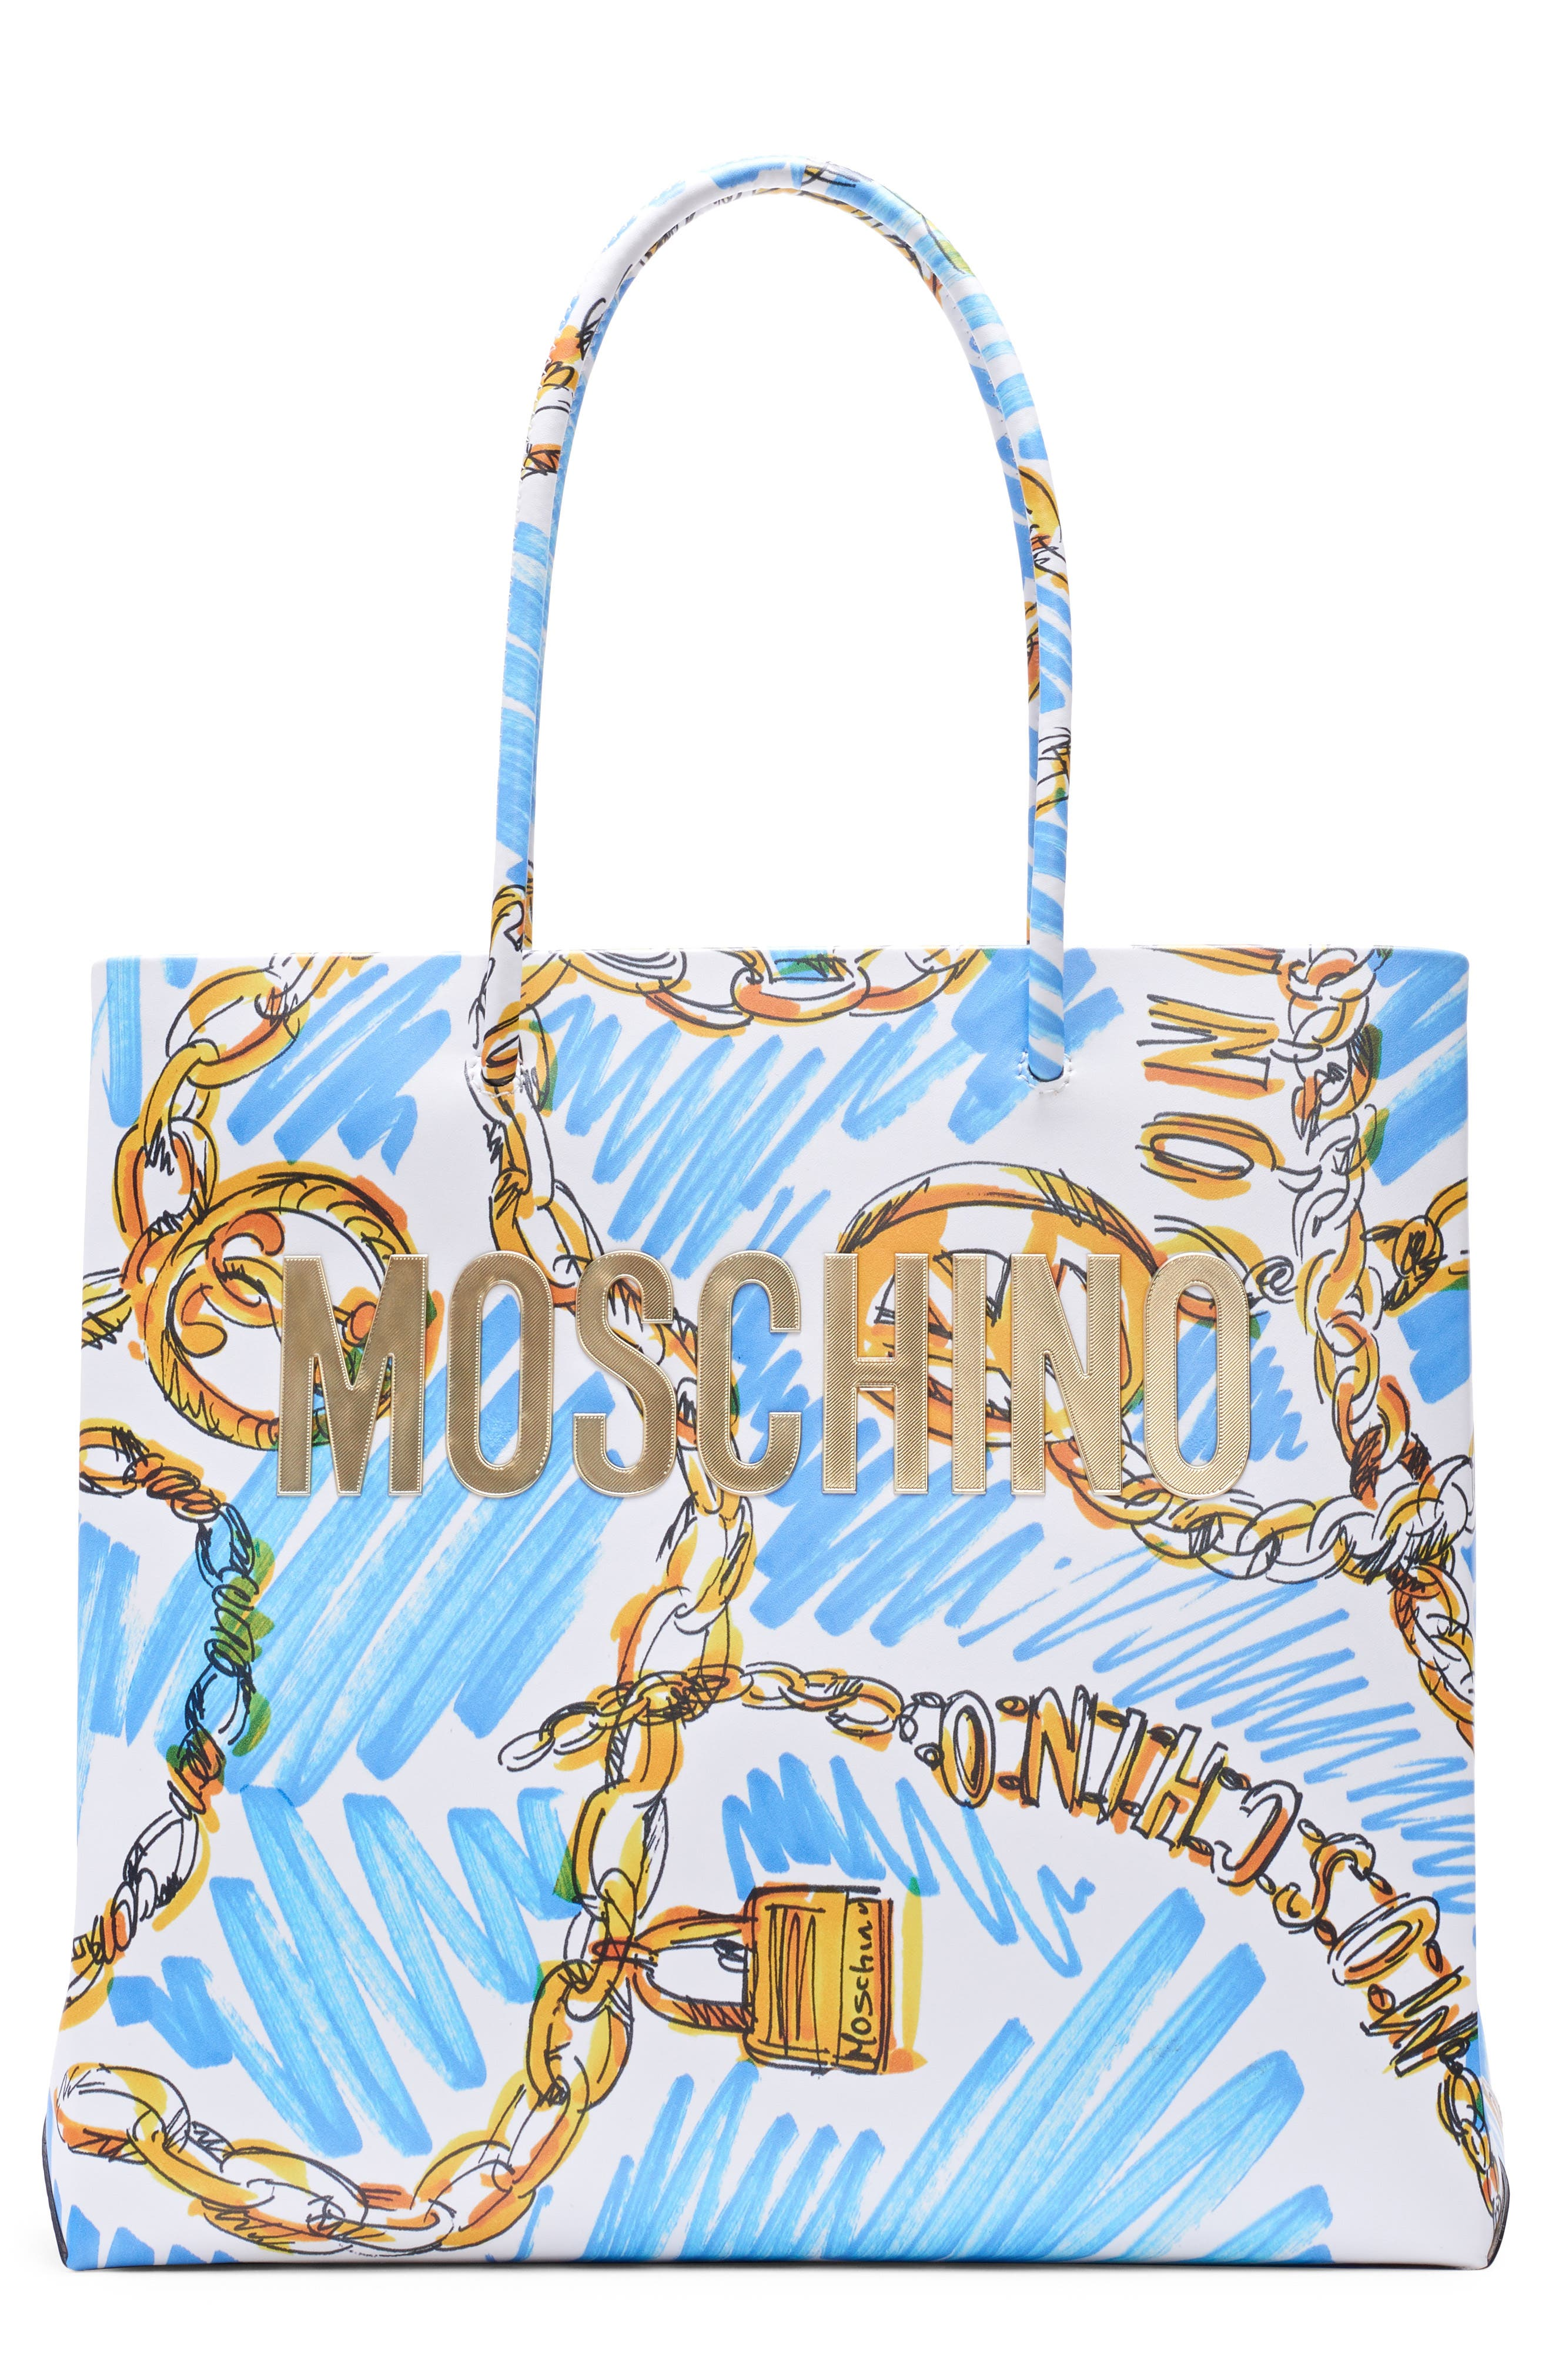 MOSCHINO, Medium Chain Scribble Tote, Main thumbnail 1, color, FANTASY PRINT WHITE